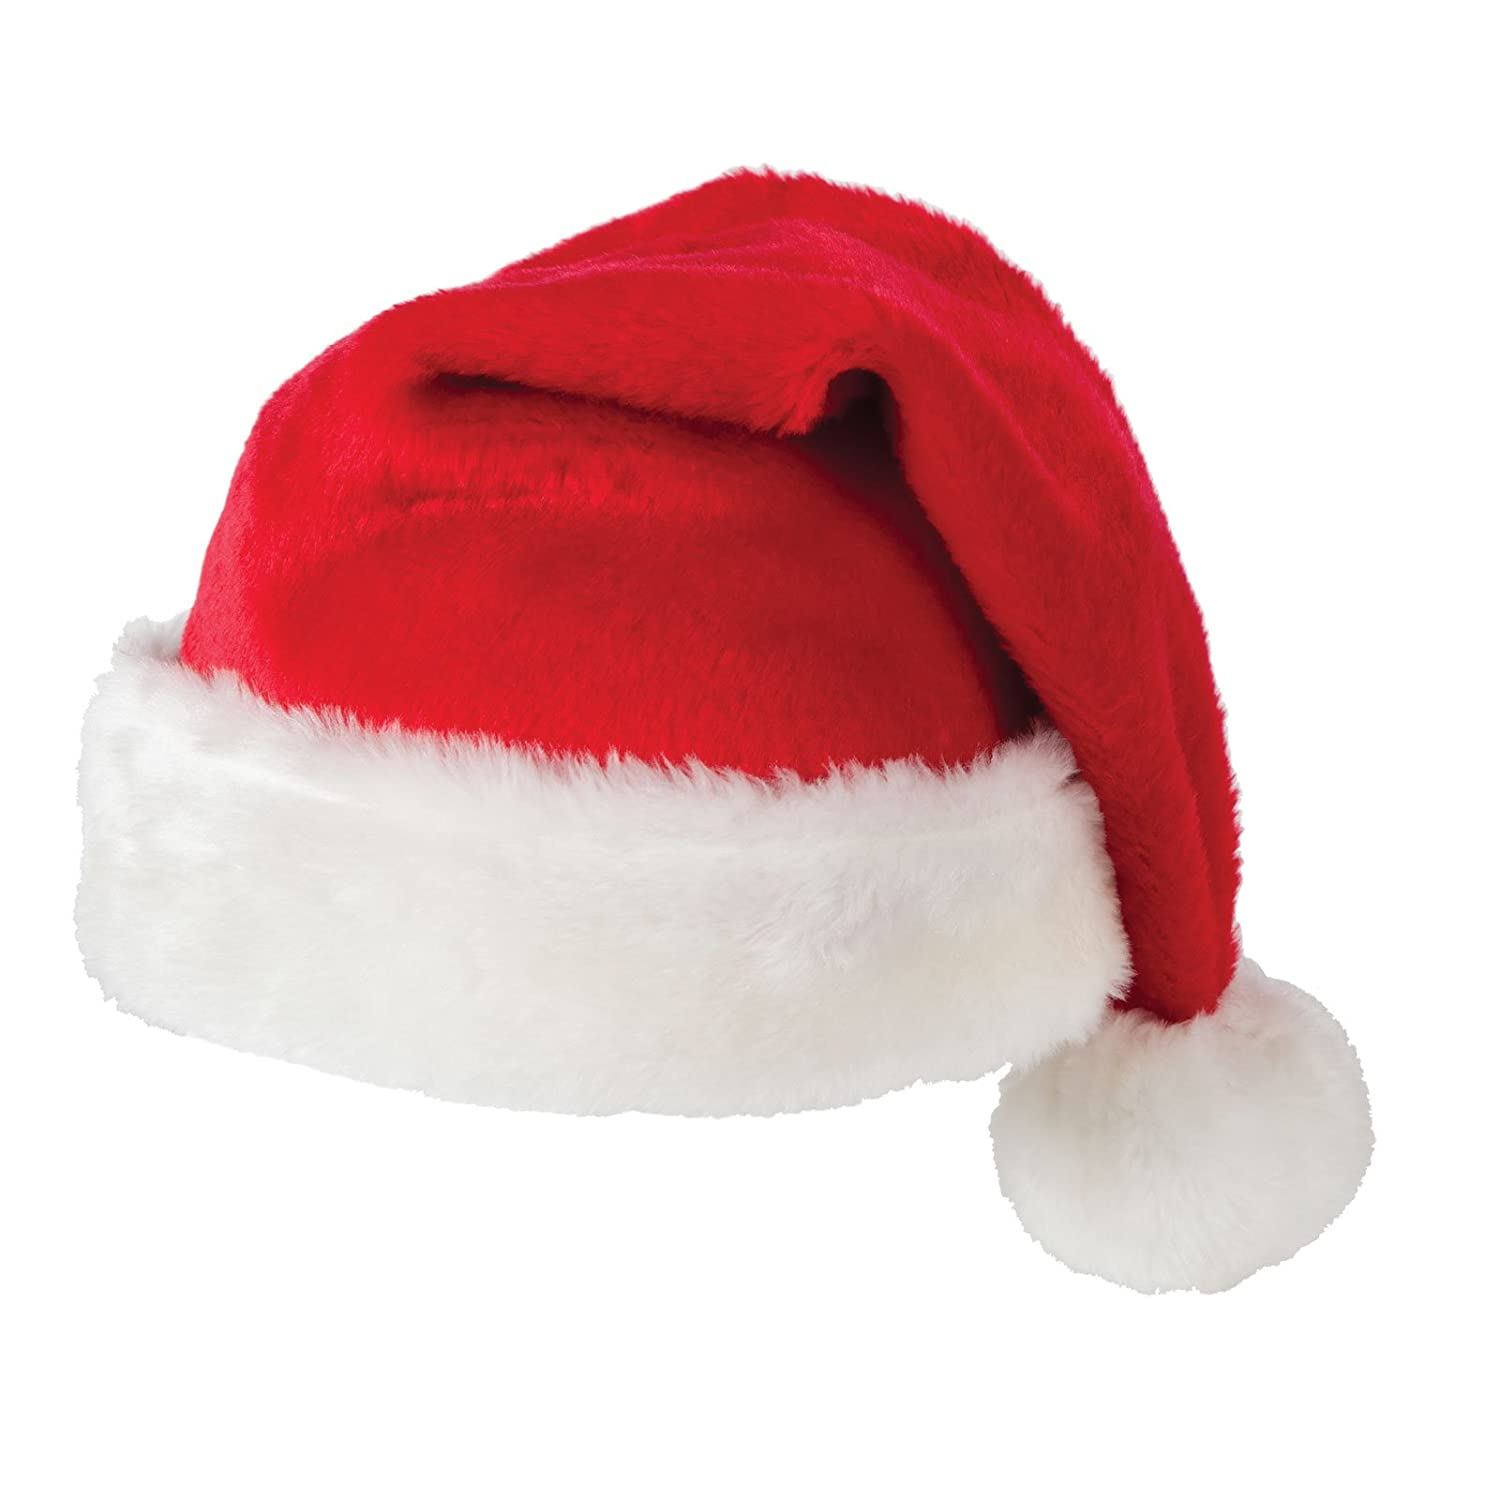 super deluxe santa hat accessory for christmas nativity